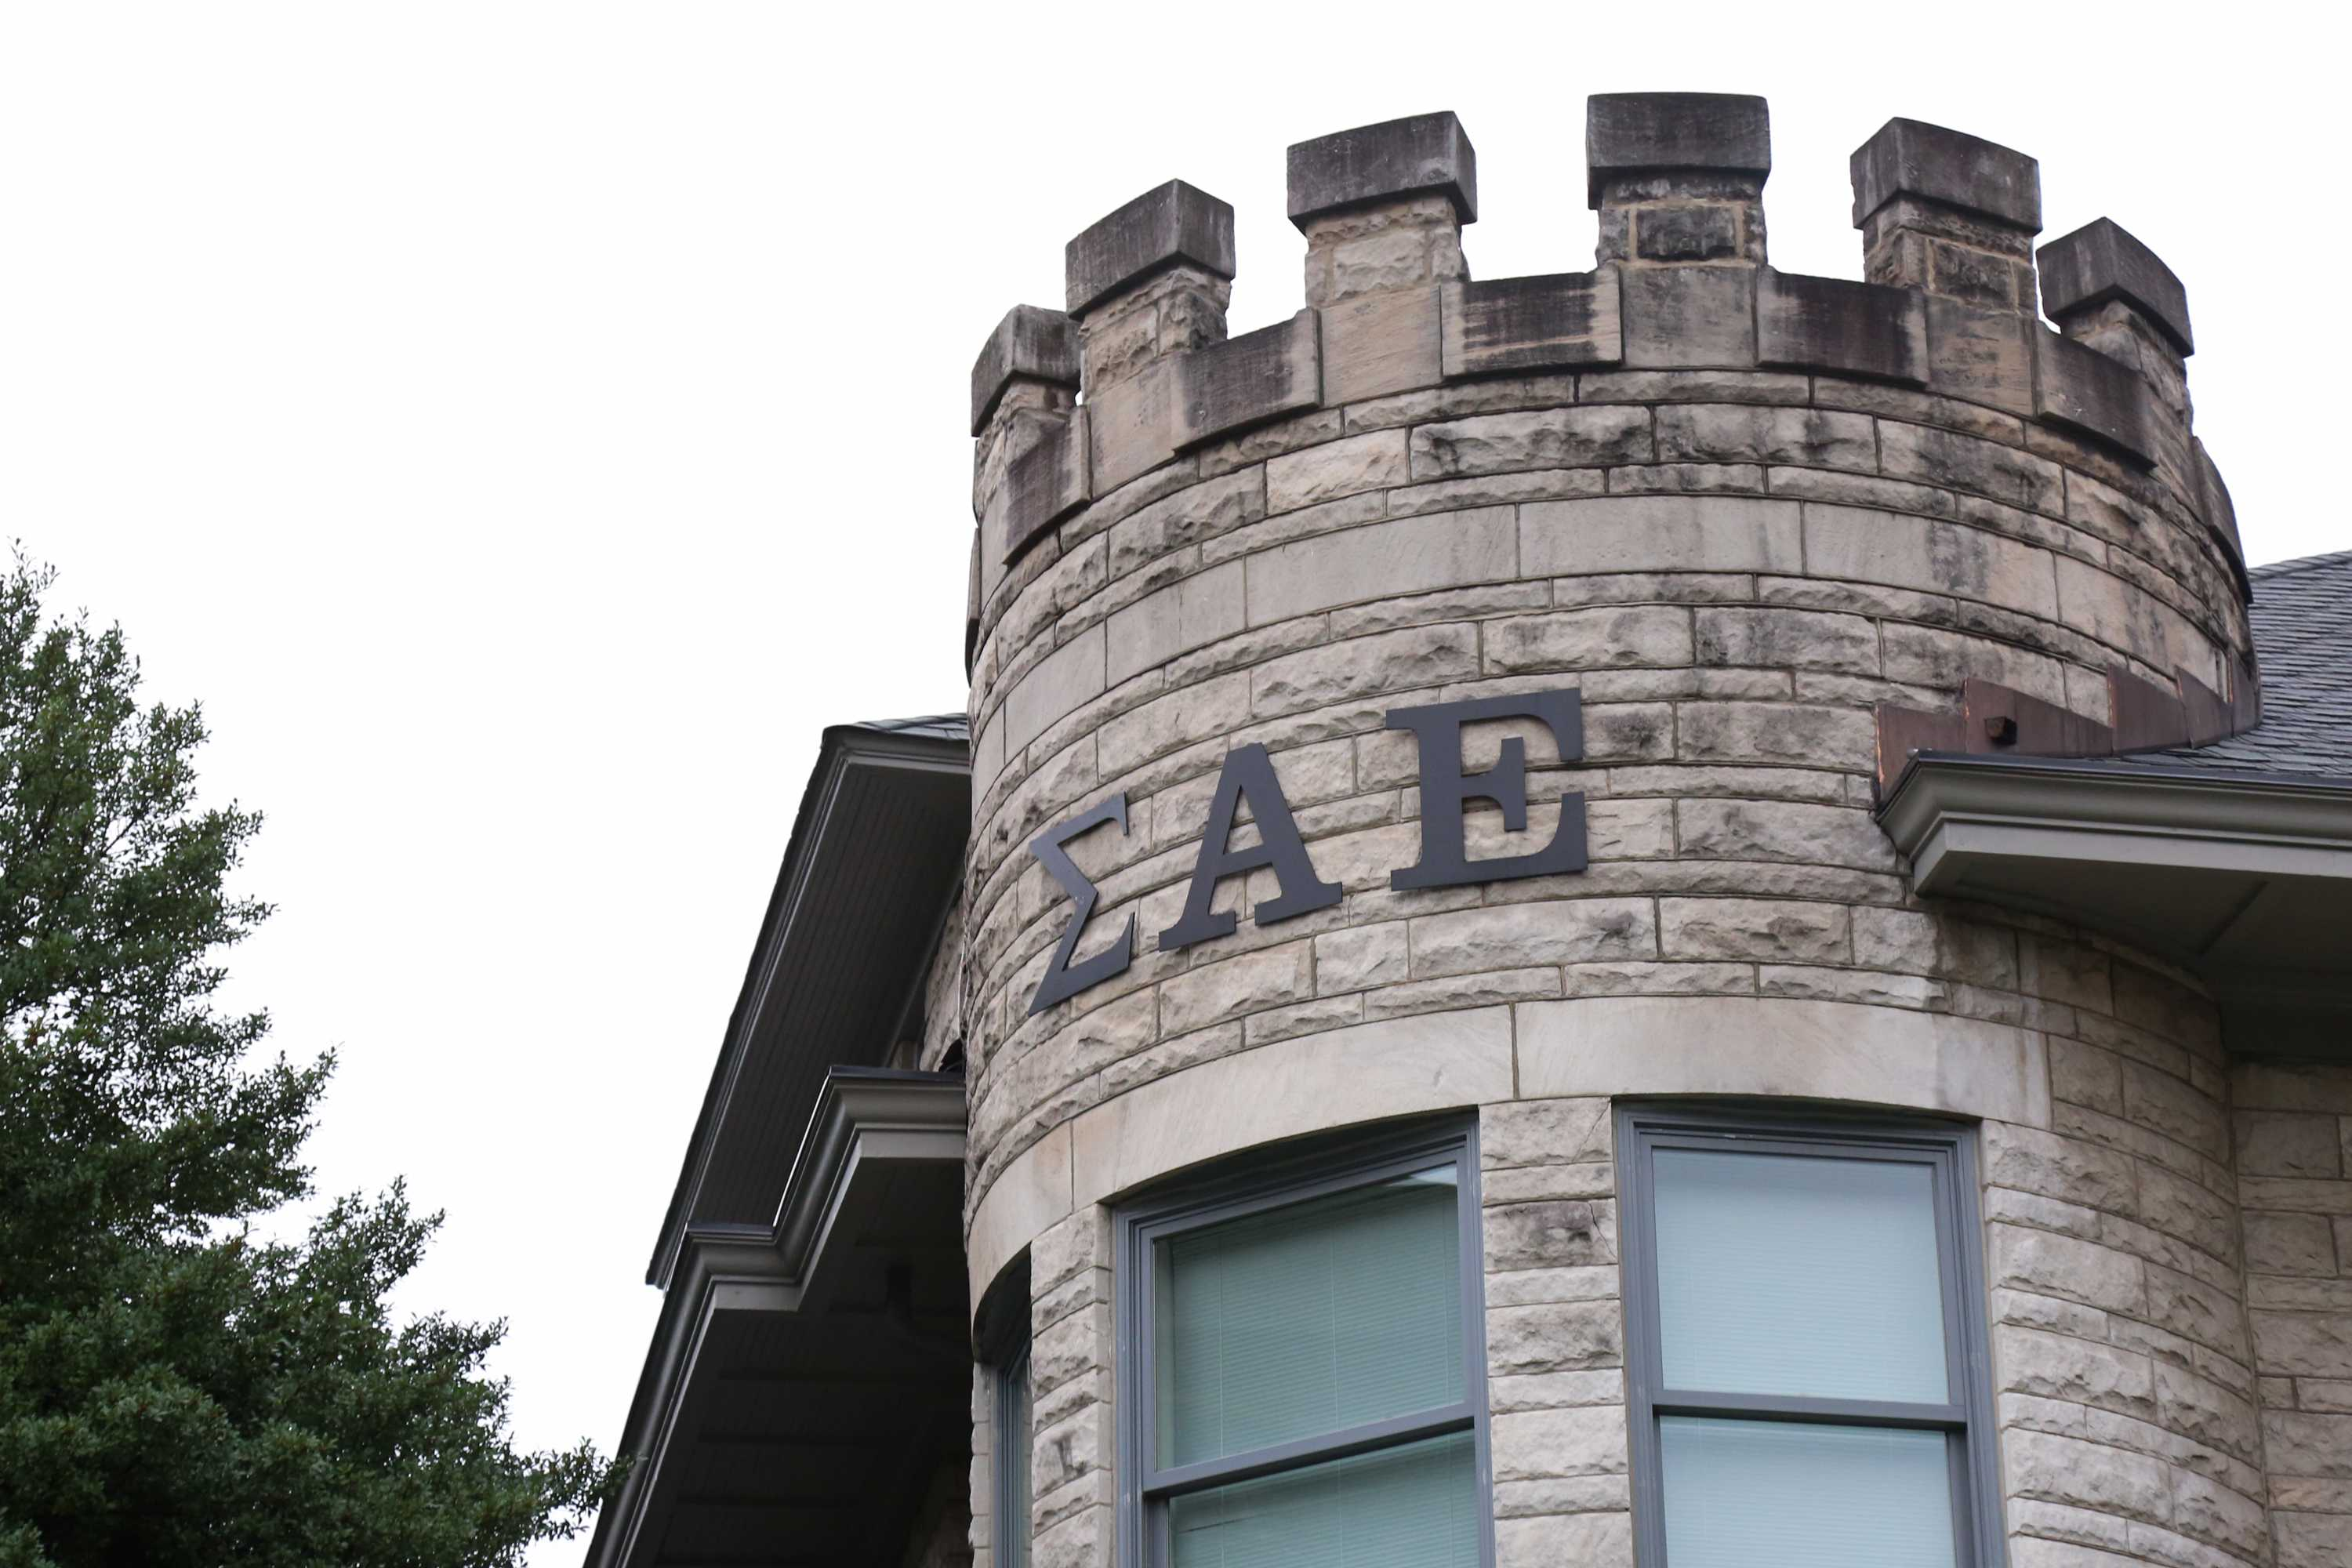 The Vanderbilt SAE chapter house stands at the corner of 25th Ave. and Kensington Pl.